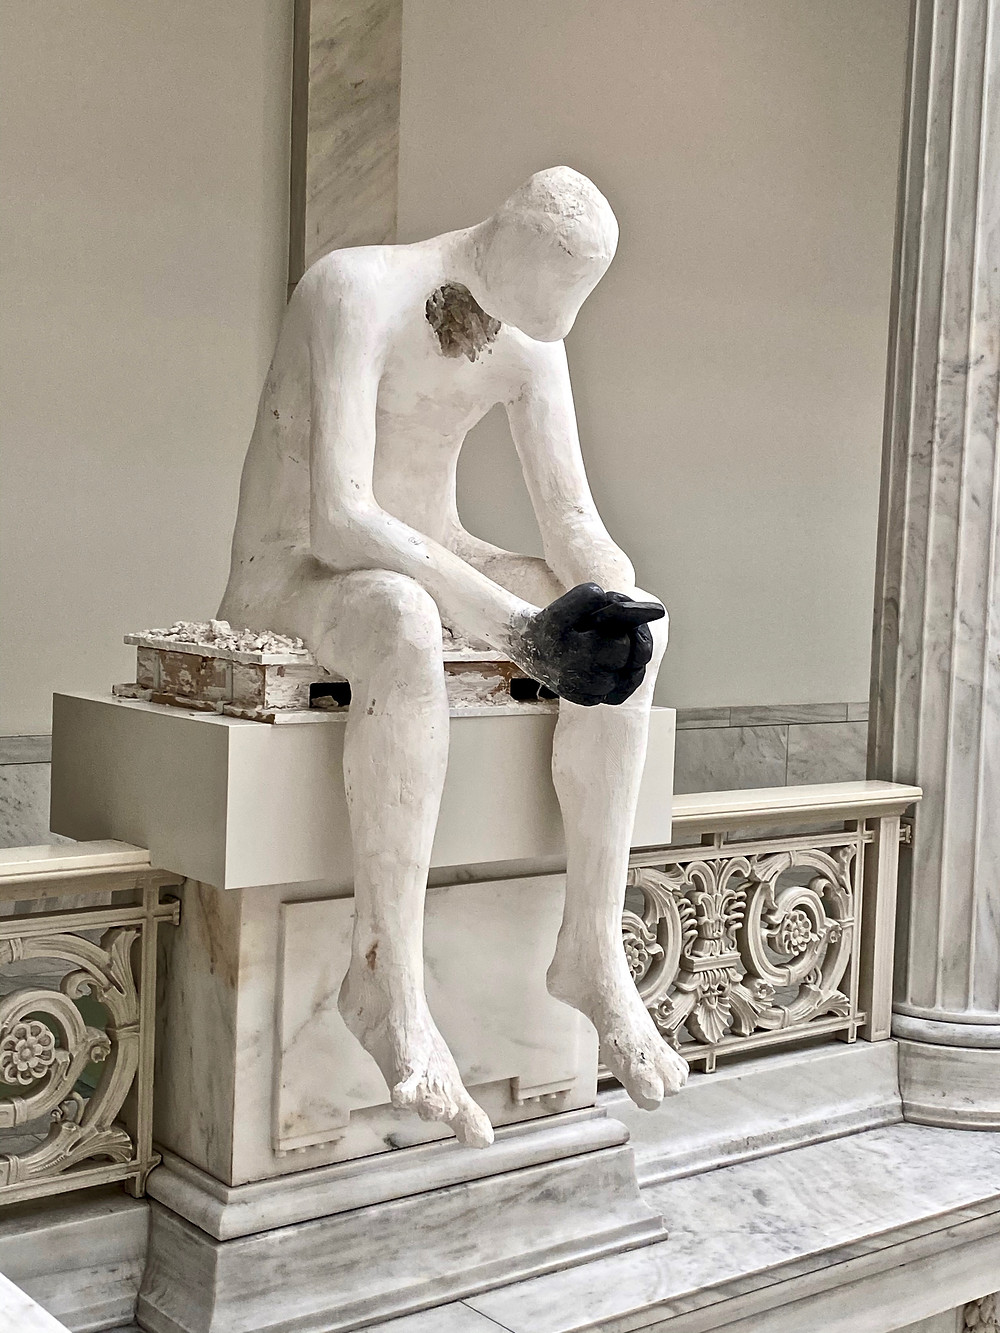 Nicole Eisenman, Prince of Swords, 2013 -- a lone contemporary sculpture in the Hall of Sculpture